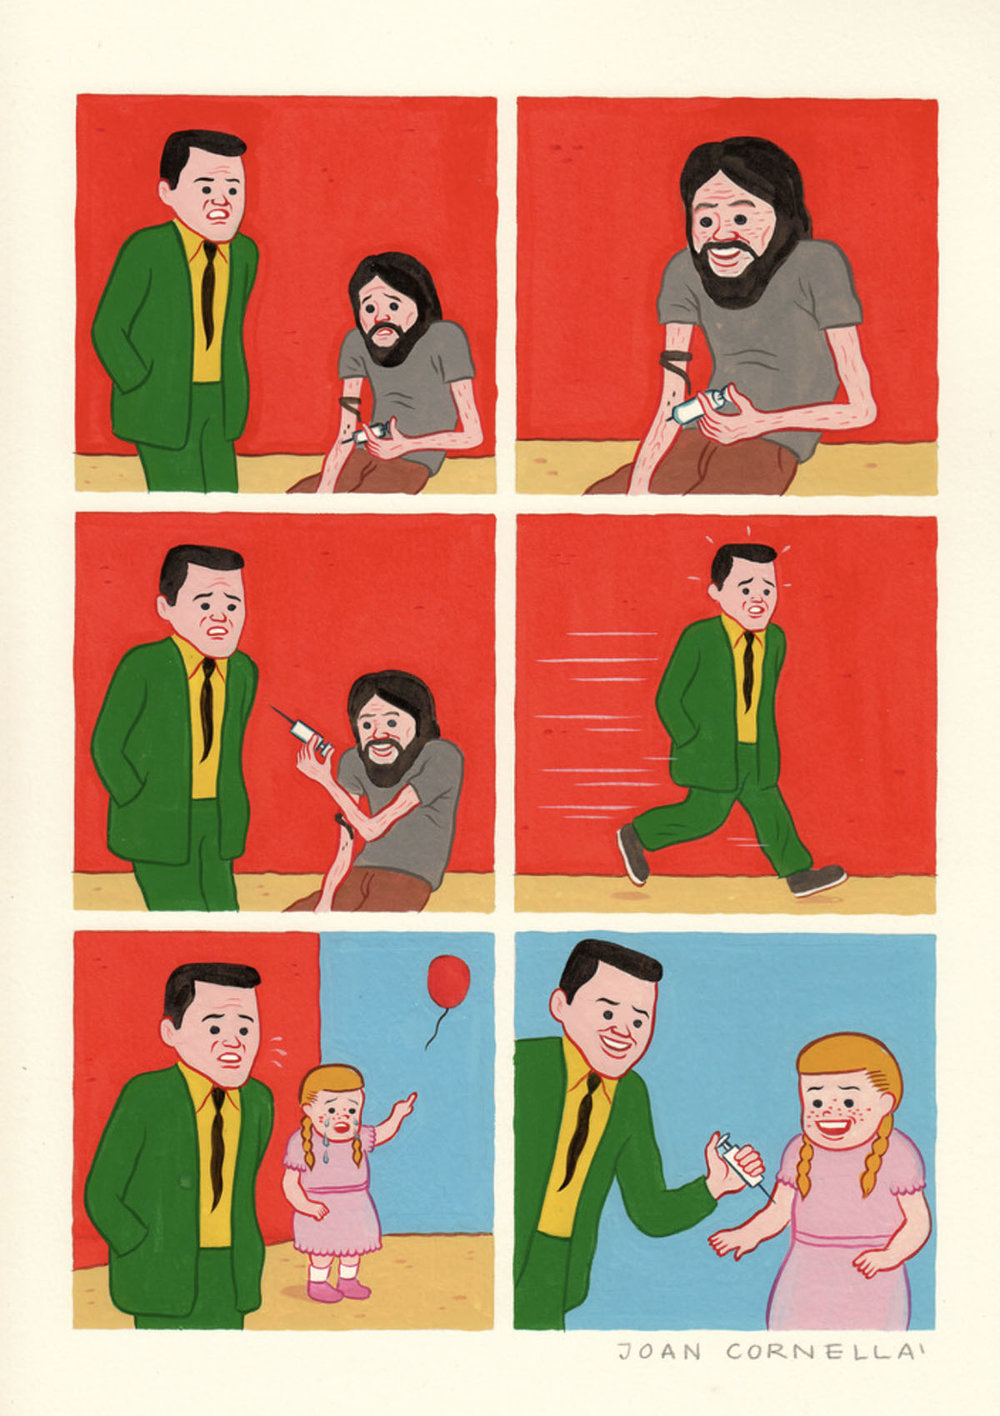 joan_cornella_exhibition_03.jpg